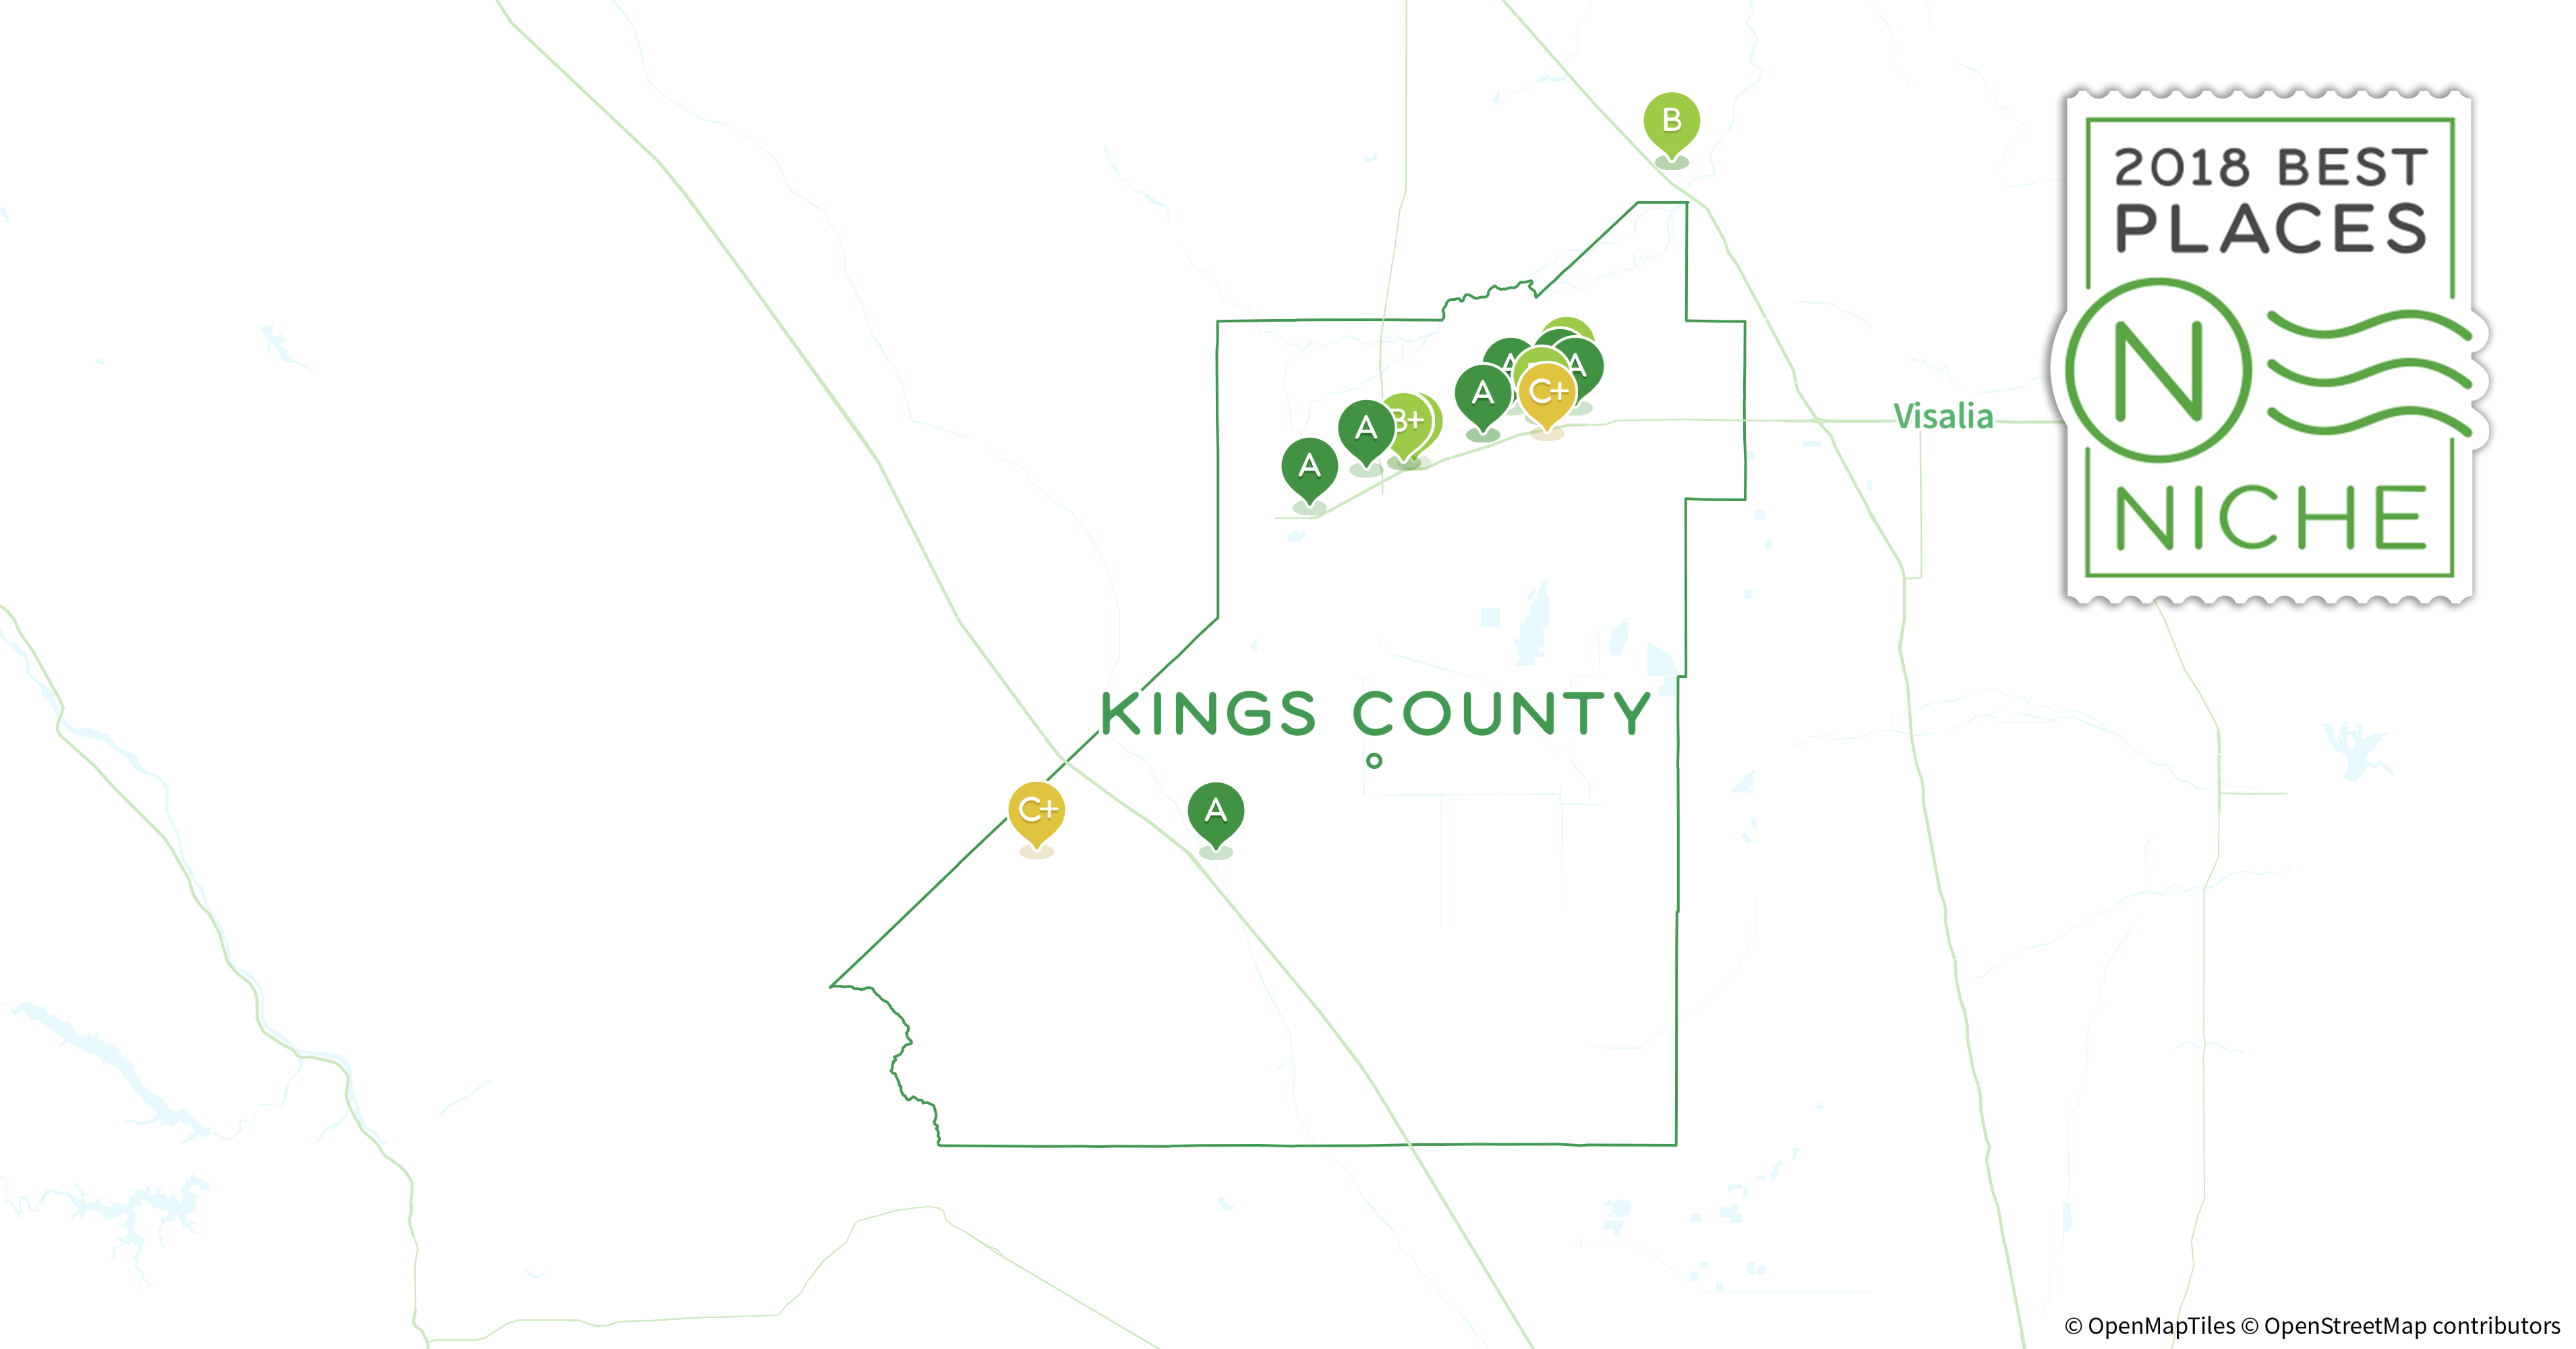 Kings County California Map.2018 Best Places To Raise A Family In Kings County Ca Niche